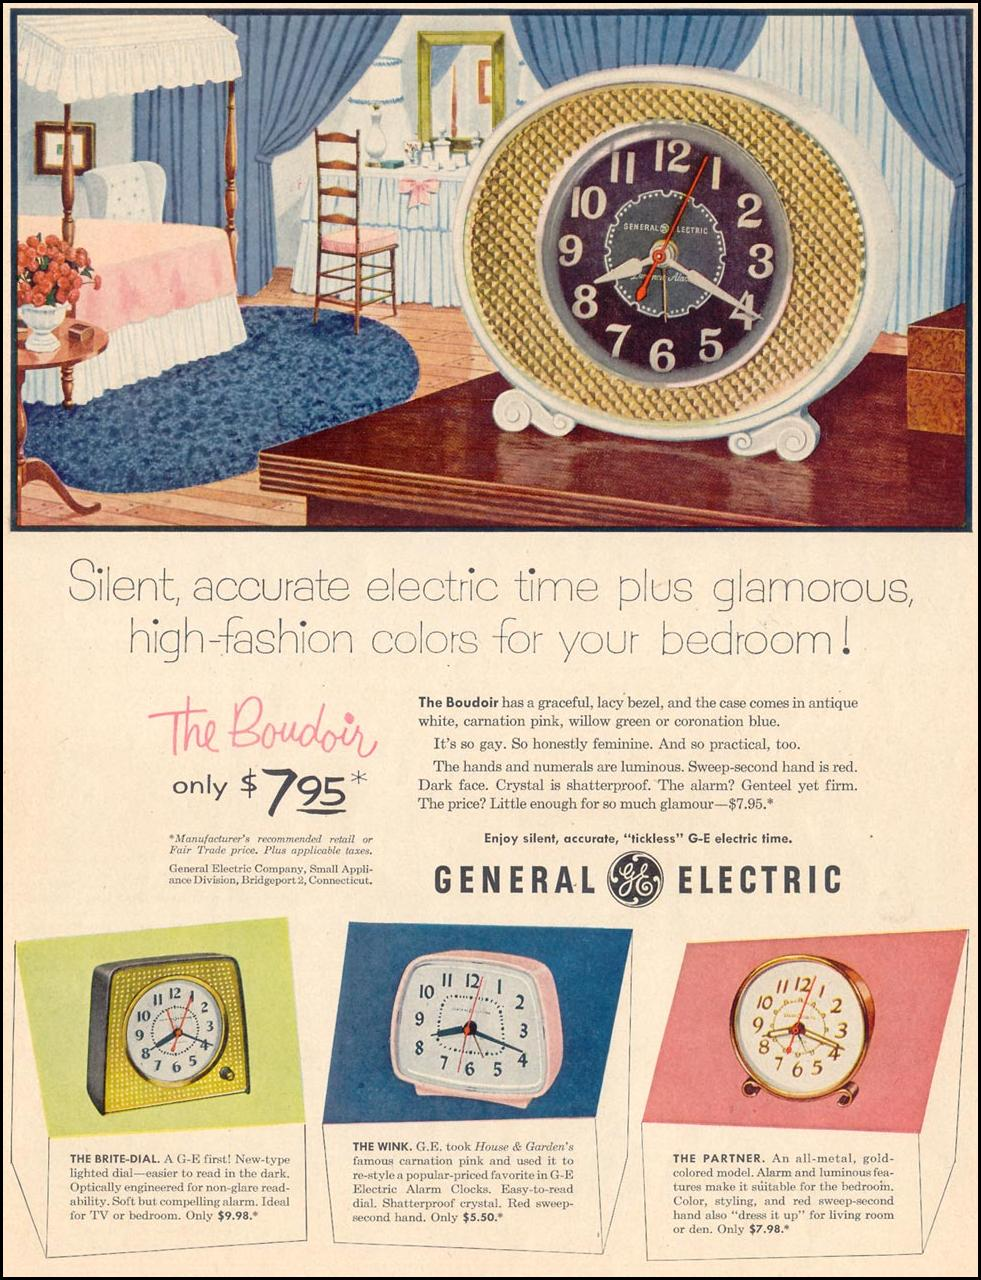 GENERAL ELECTRIC CLOCKS LIFE 11/30/1953 p. 9